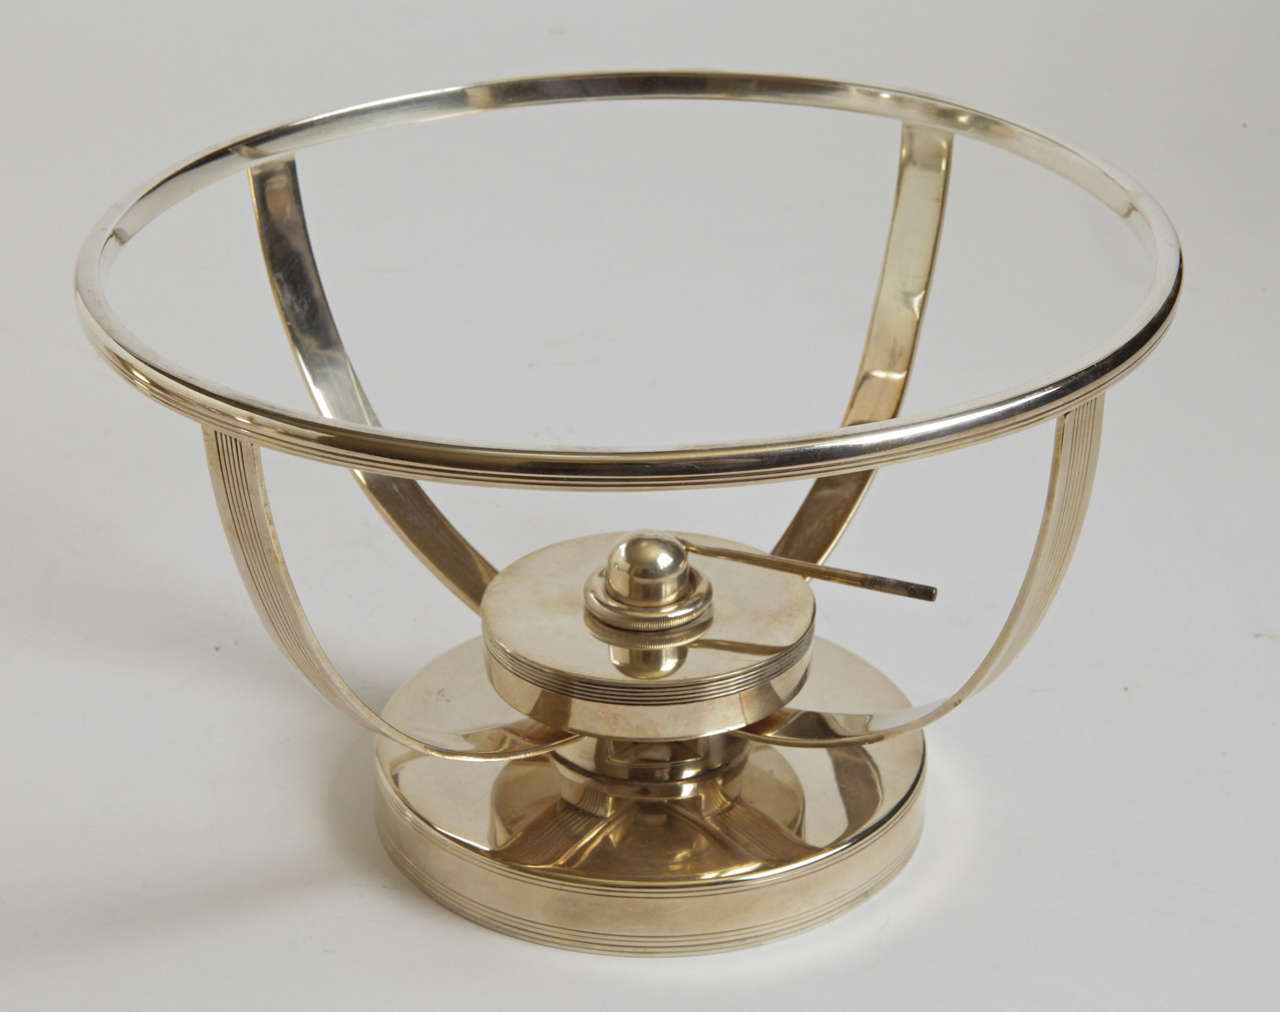 Machine Age Art Deco Chafing Set, Lurelle Guild for International Silver  Rare For Sale 2